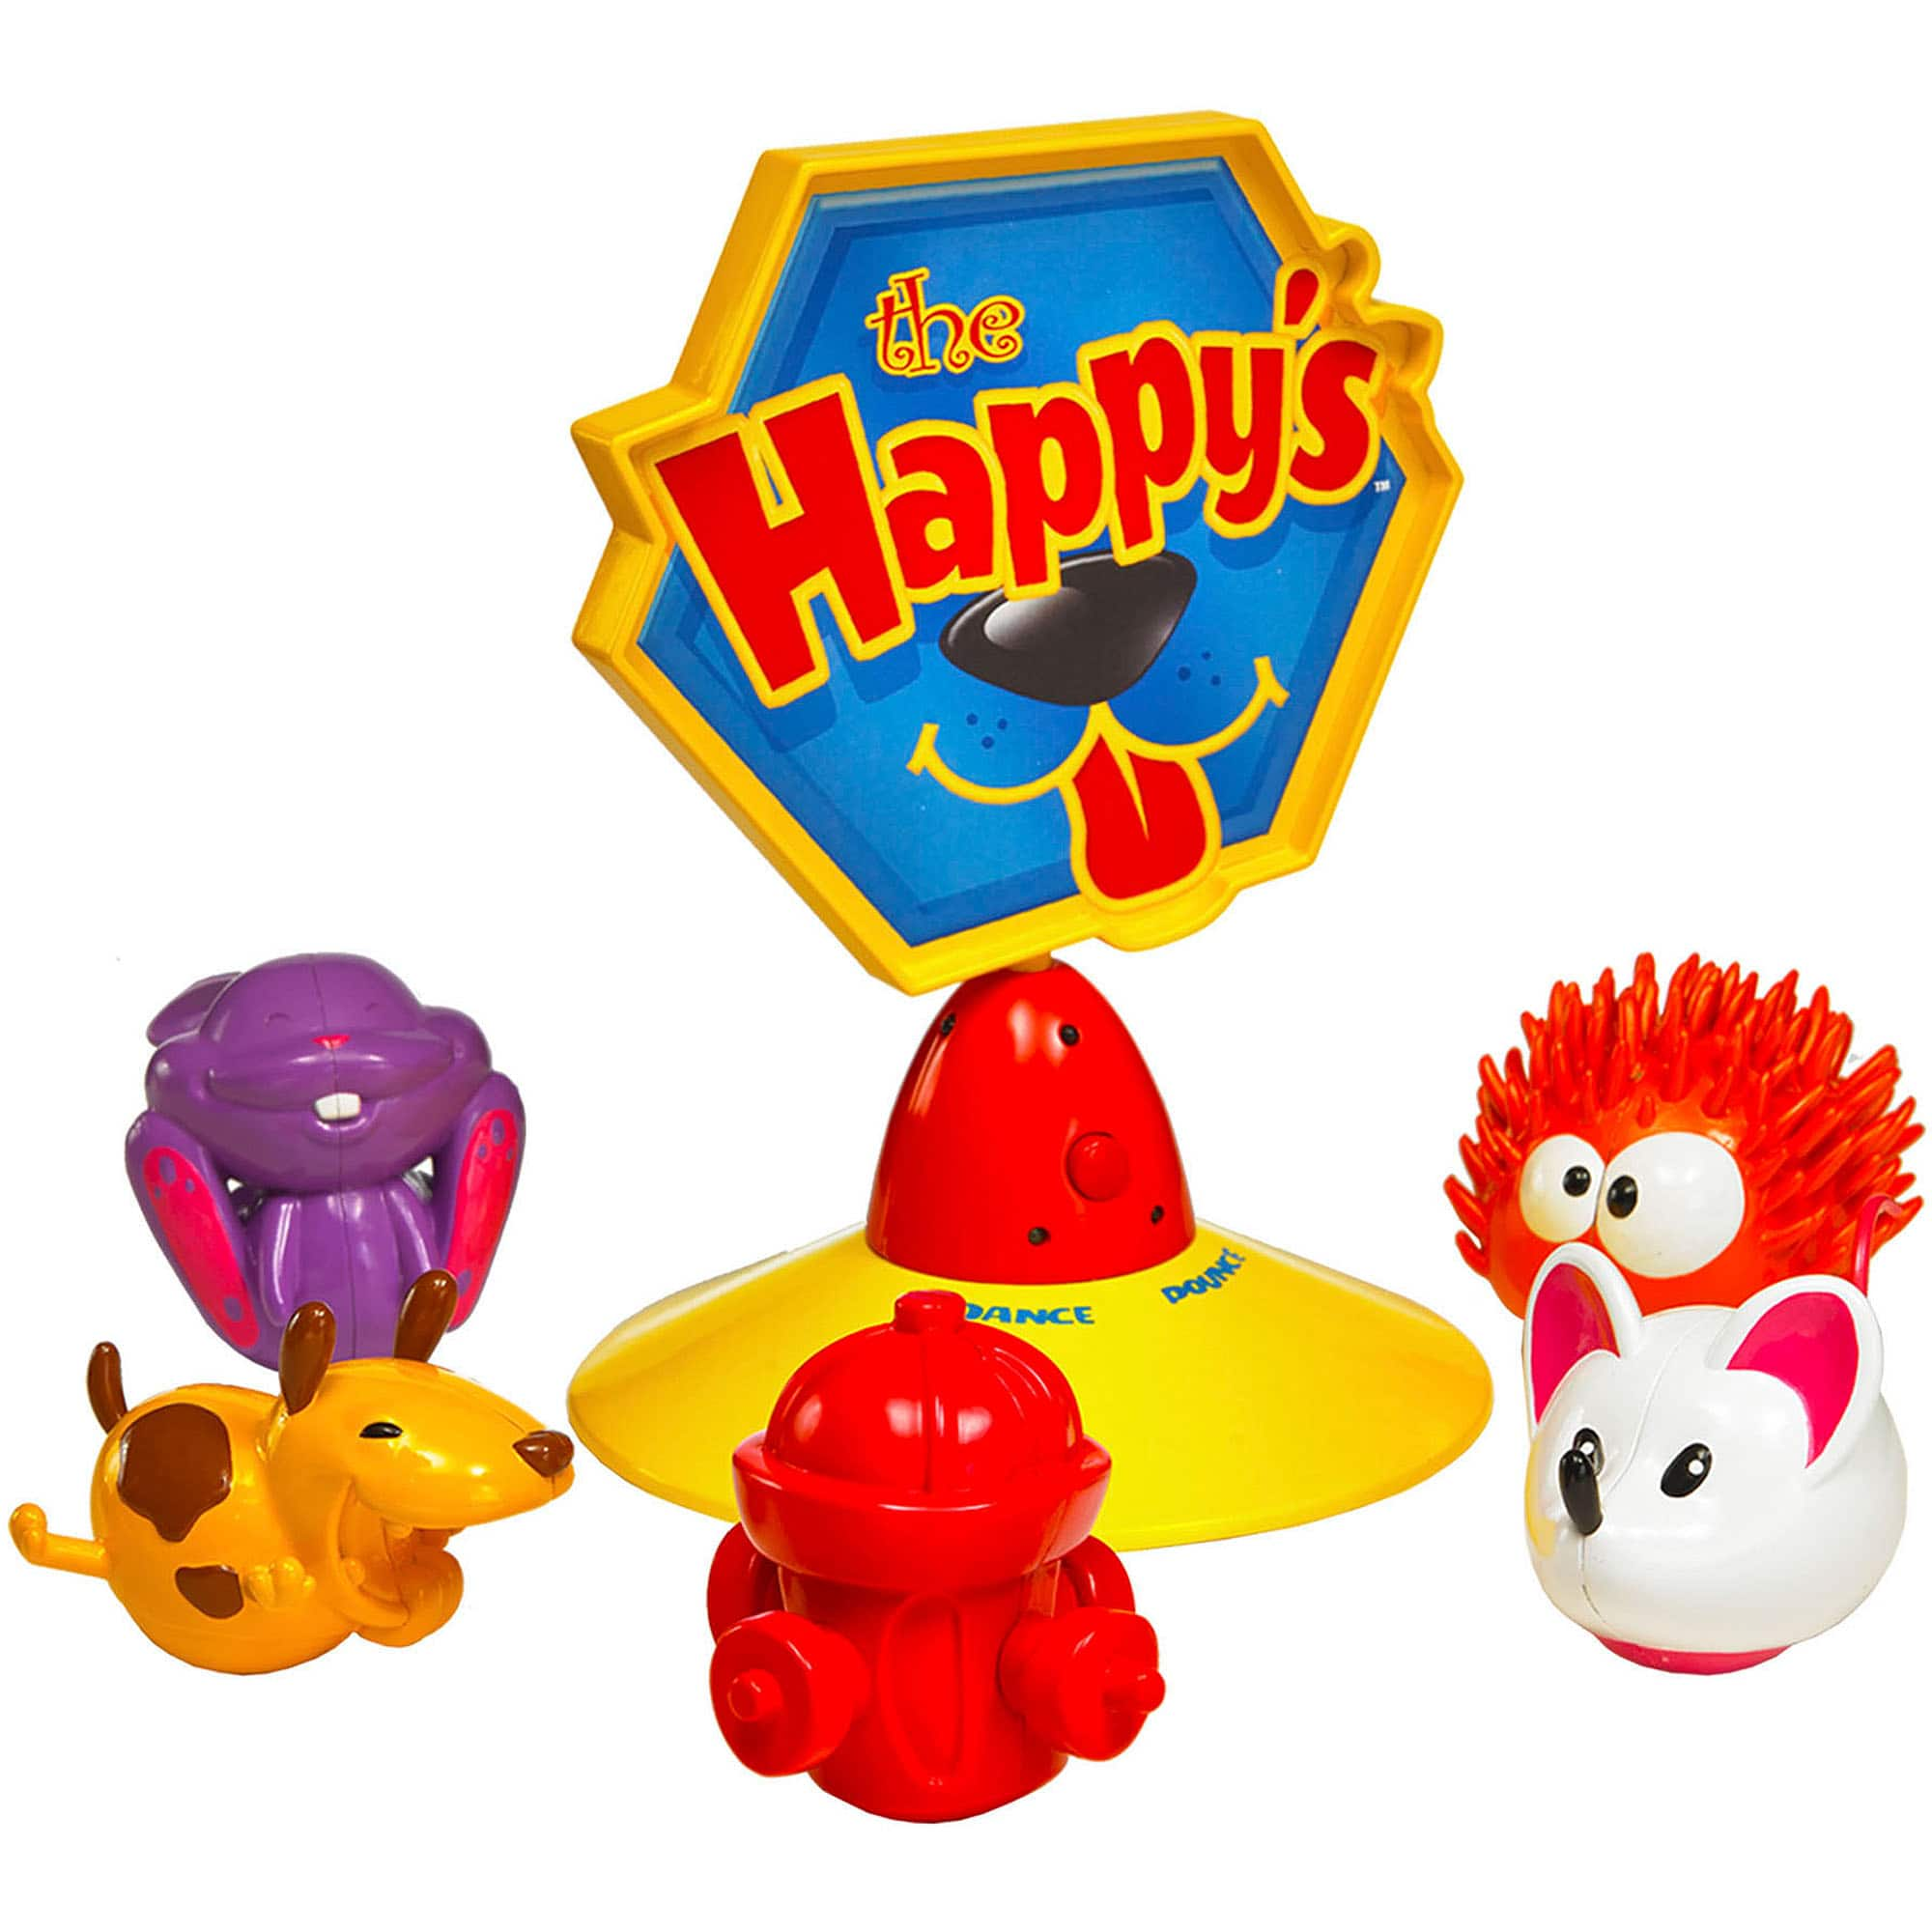 The Happy's Clubhouse $1.99 @Walmart